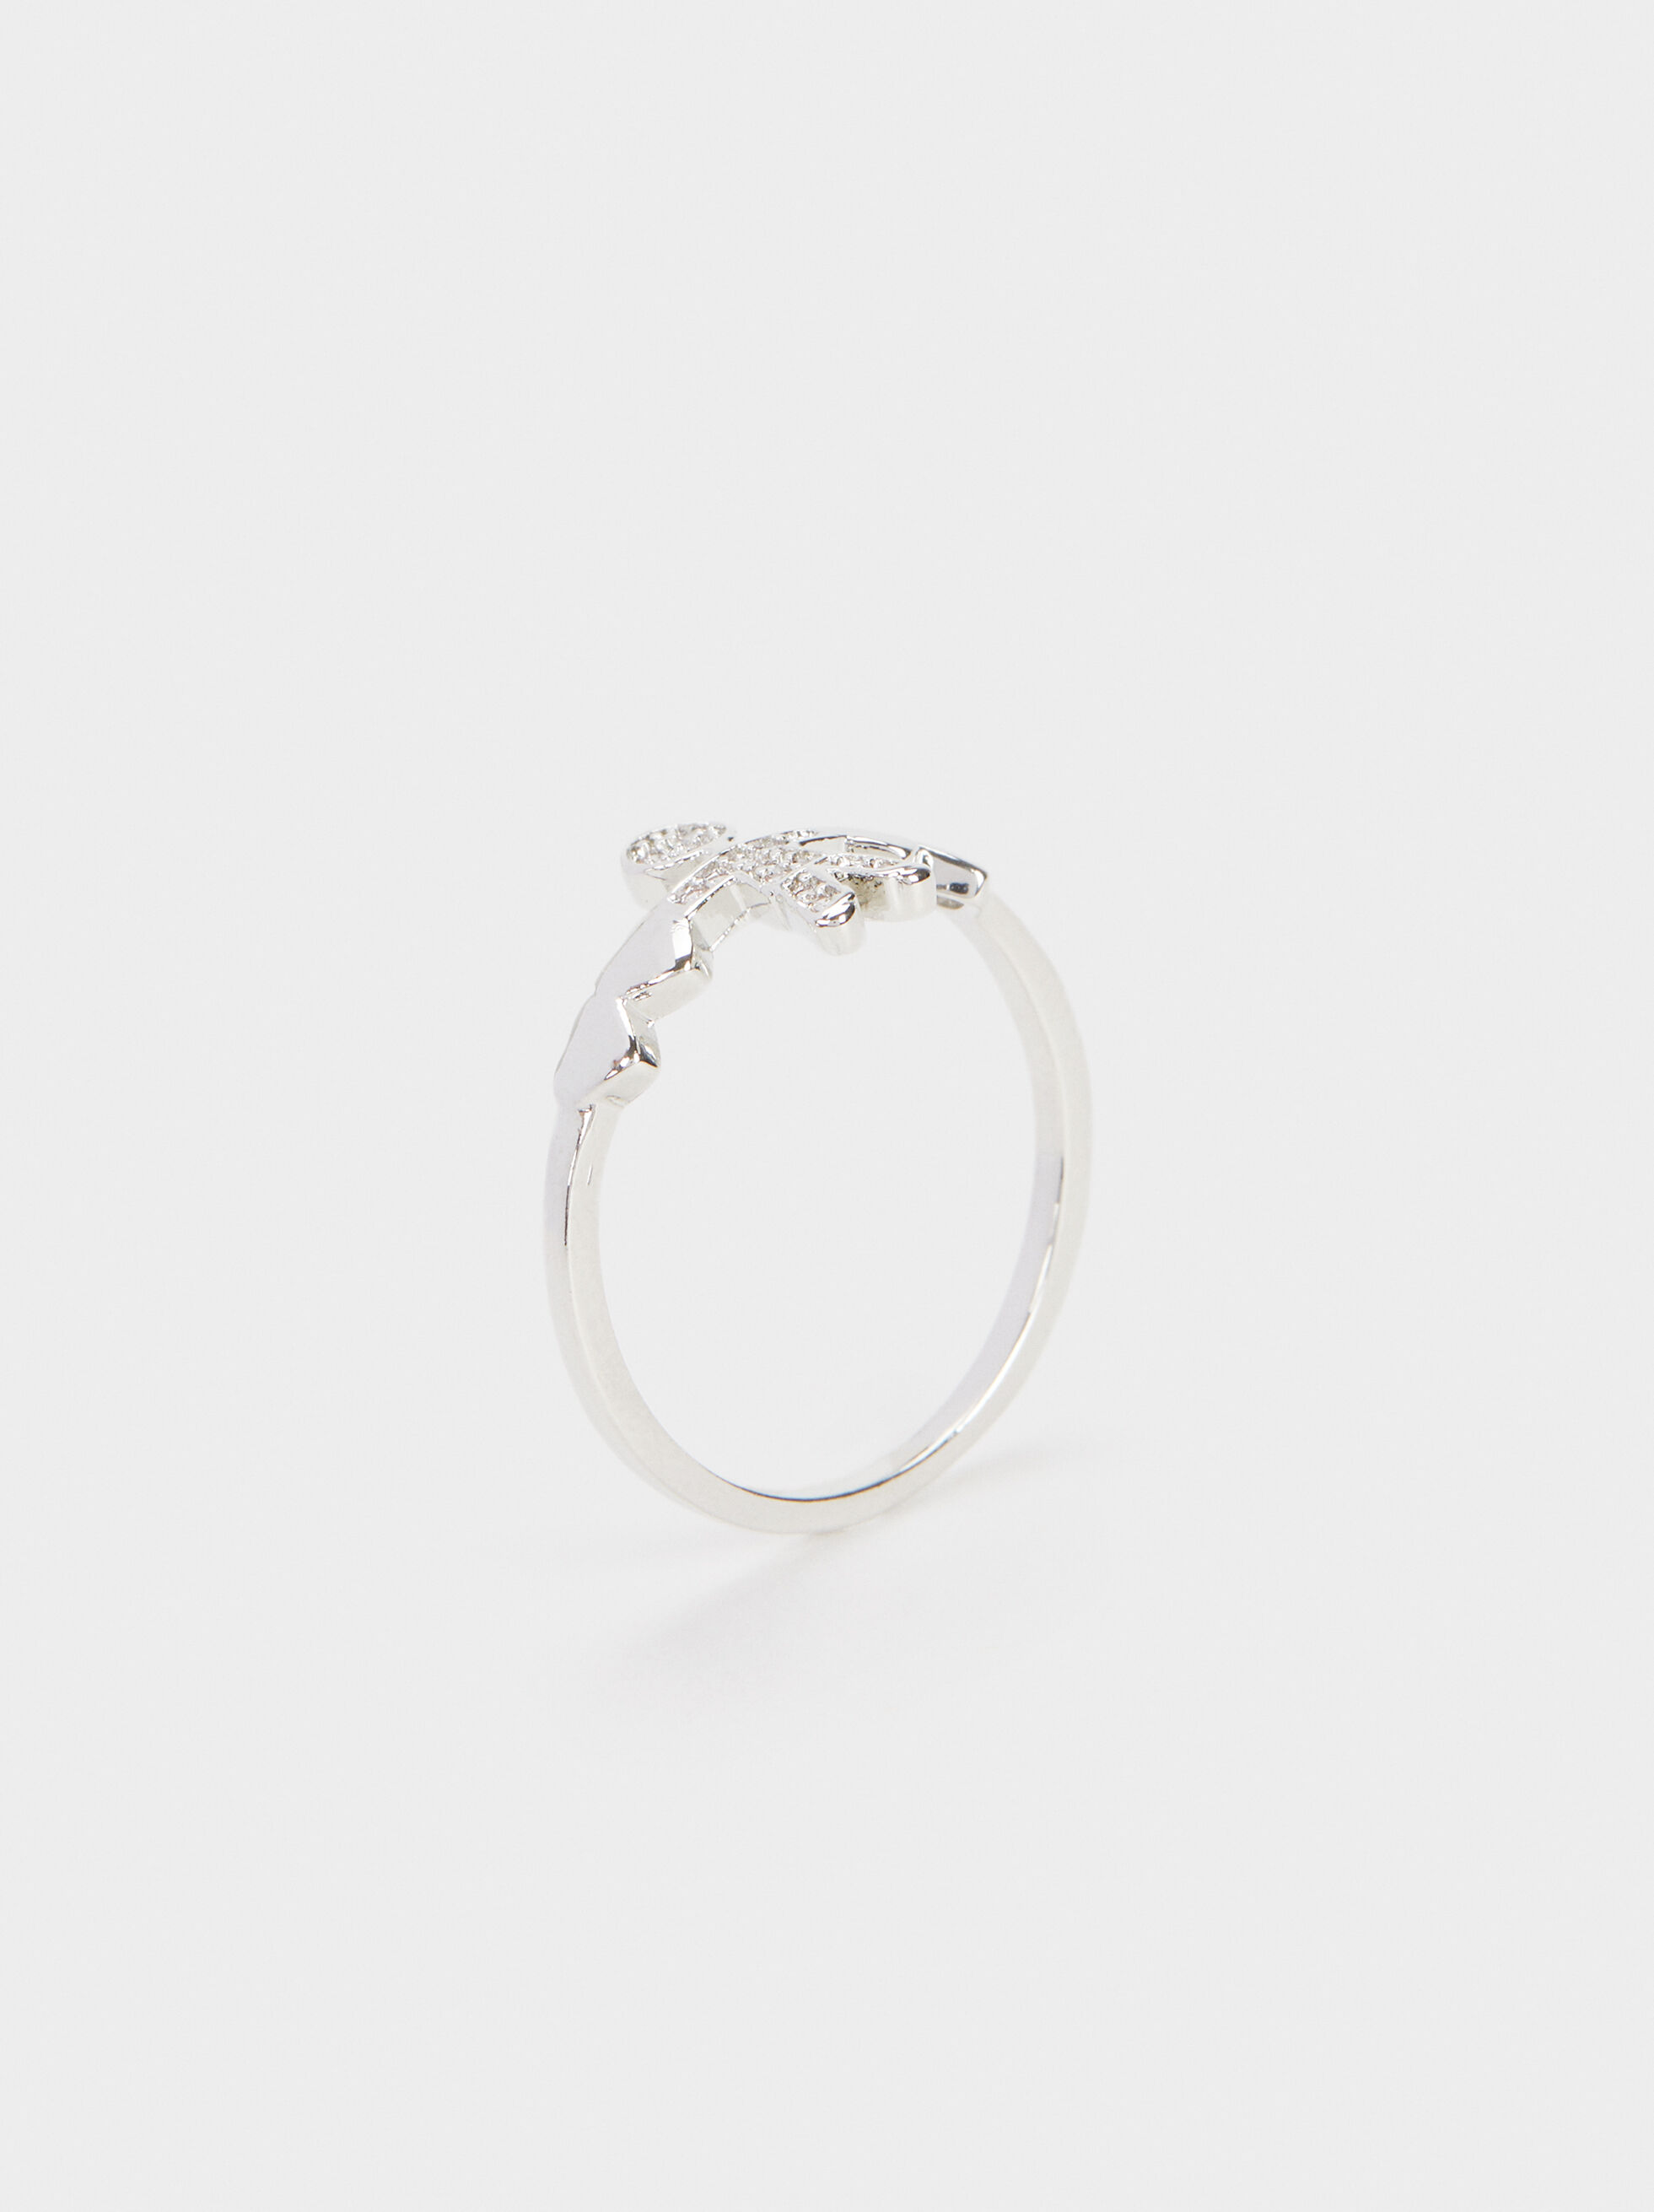 Boy'S Heart Ring, Silver, hi-res